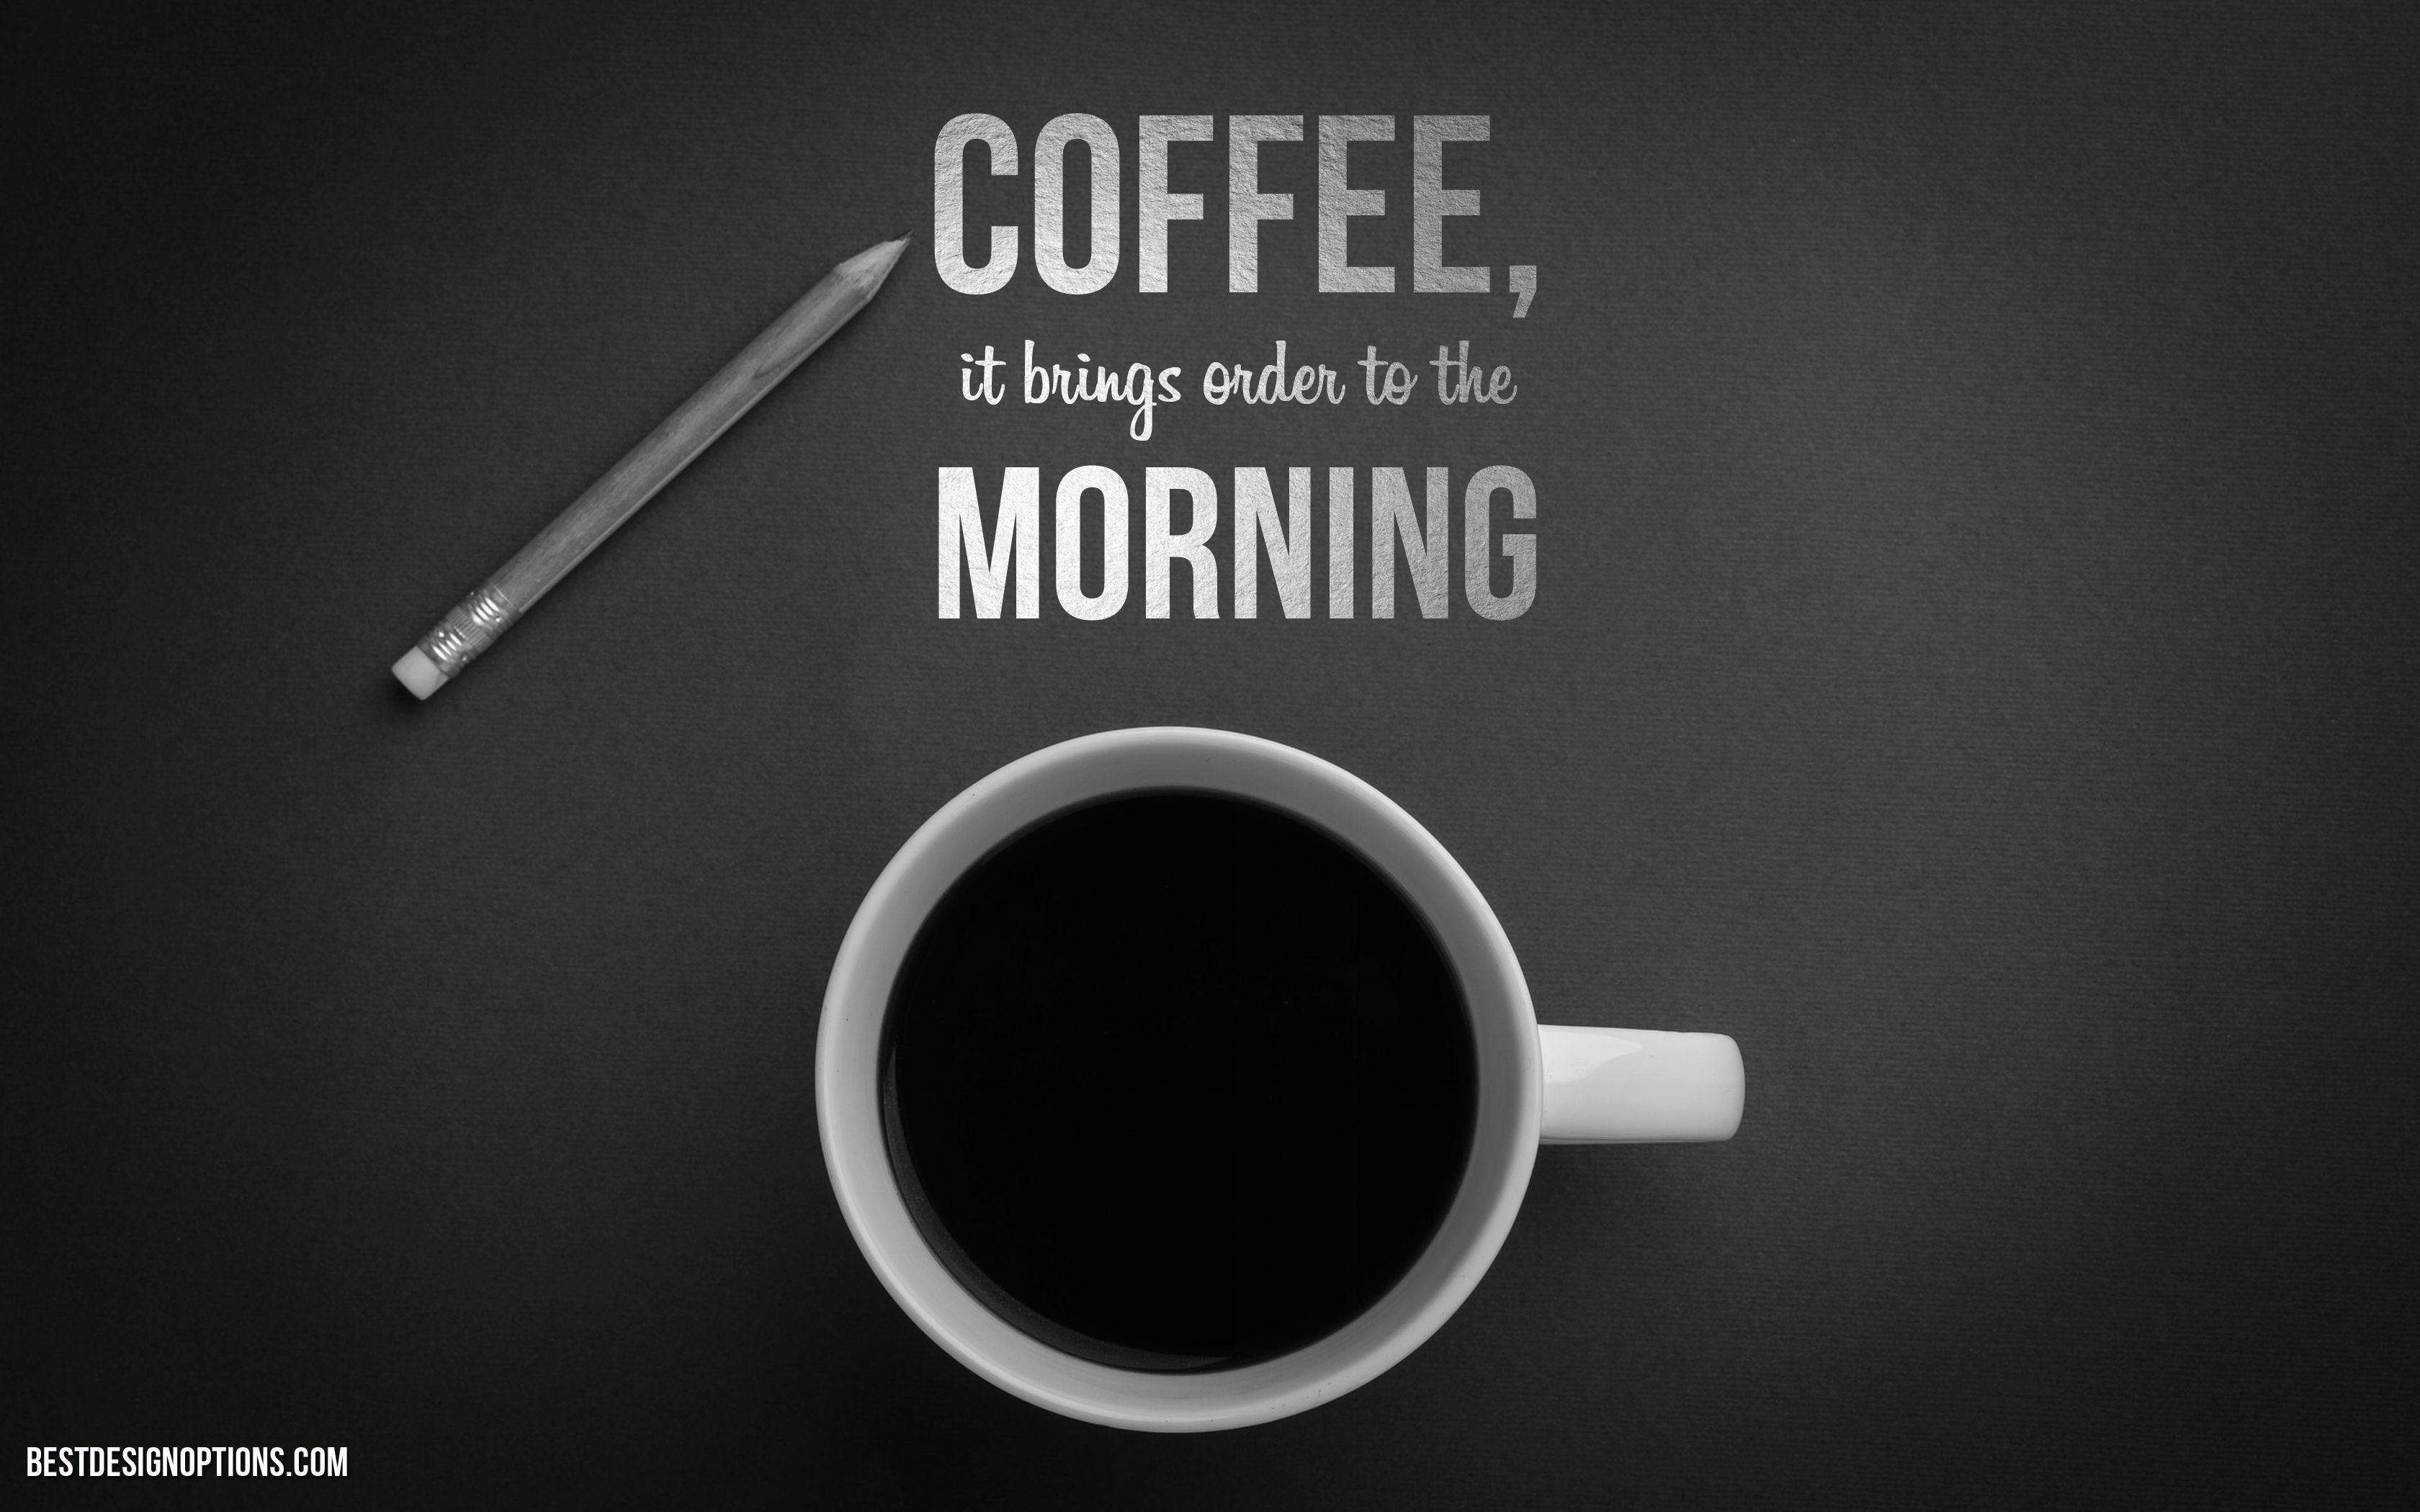 Coffee Quotes Wallpapers - Wallpaper Cave